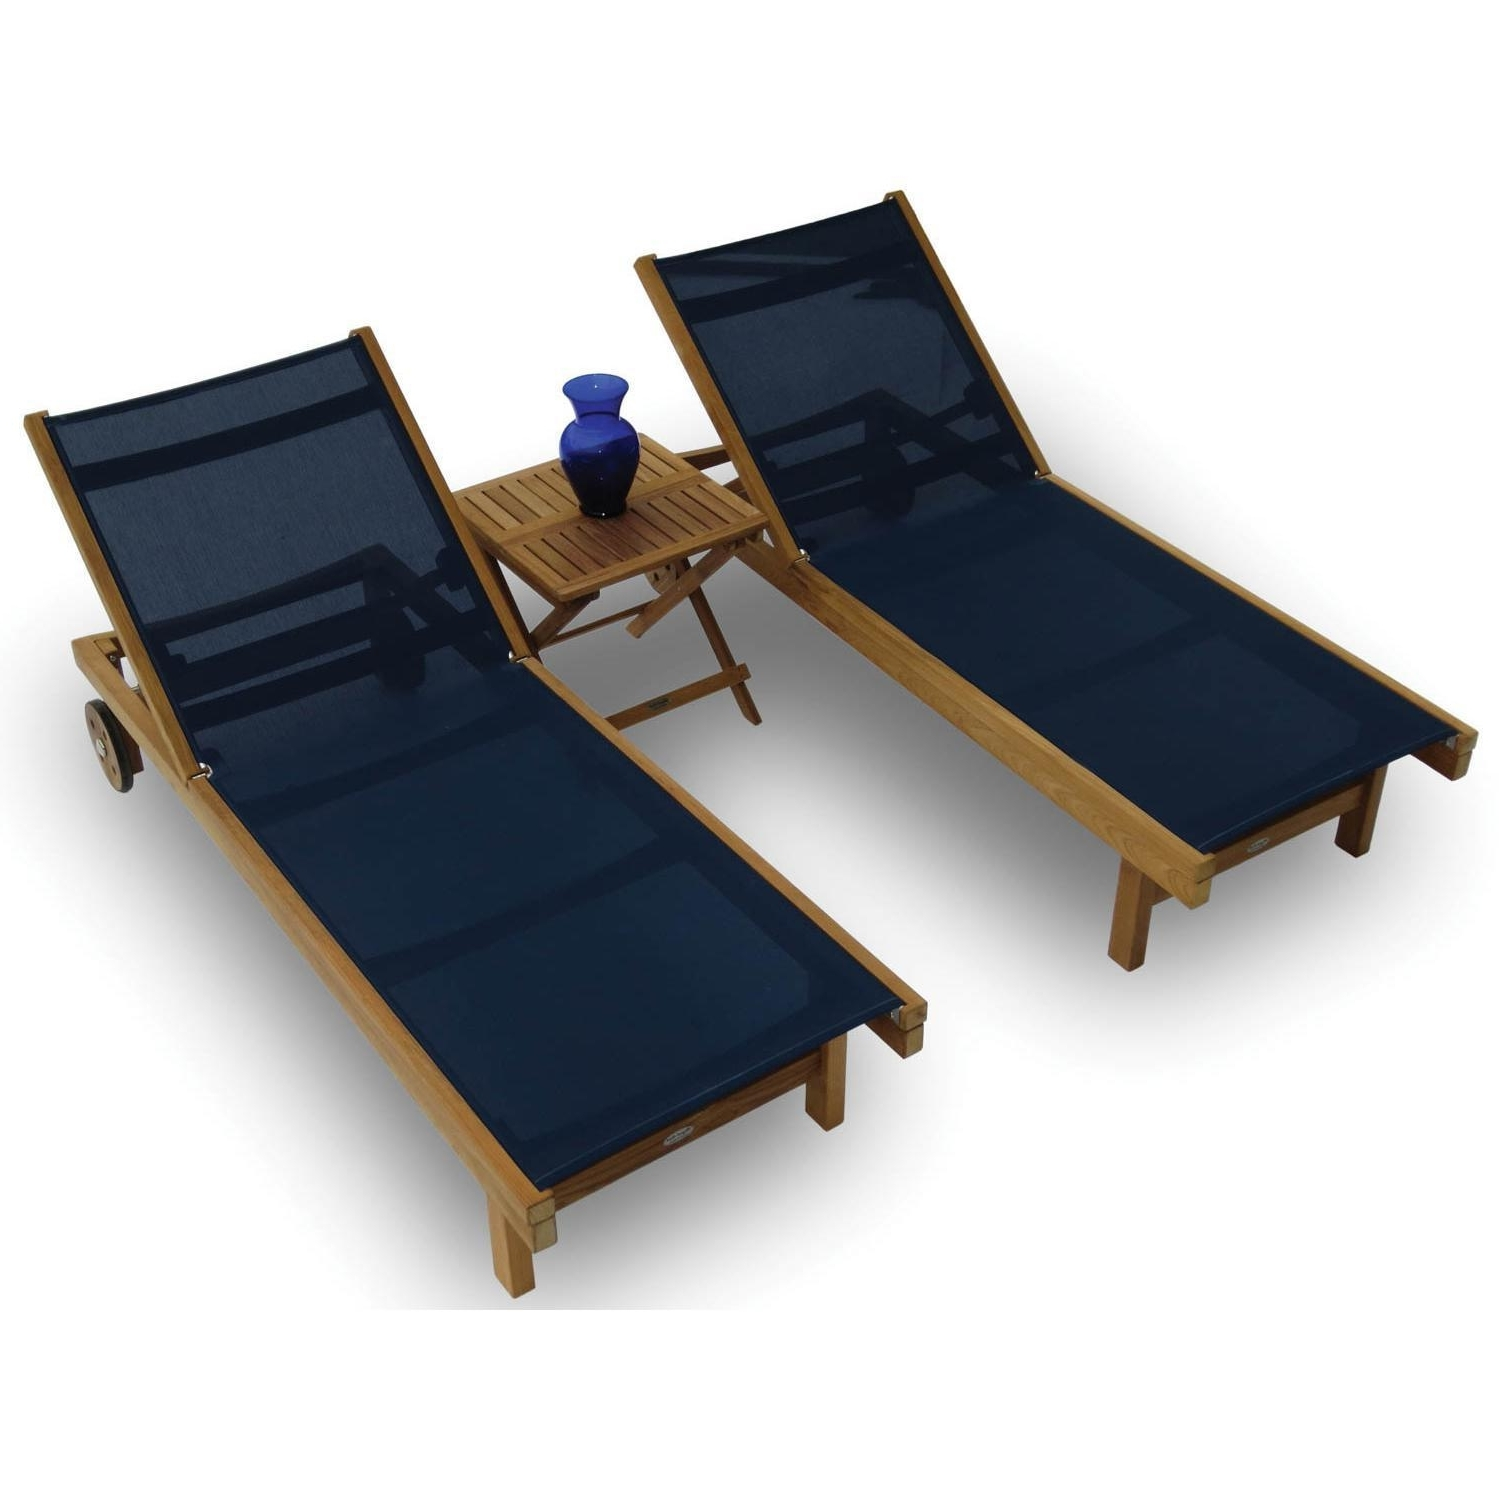 Royal Teak Collection Sundaze 2 Person Sling Chaise Lounge Set Intended For Preferred Sling Chaise Lounges (View 12 of 15)